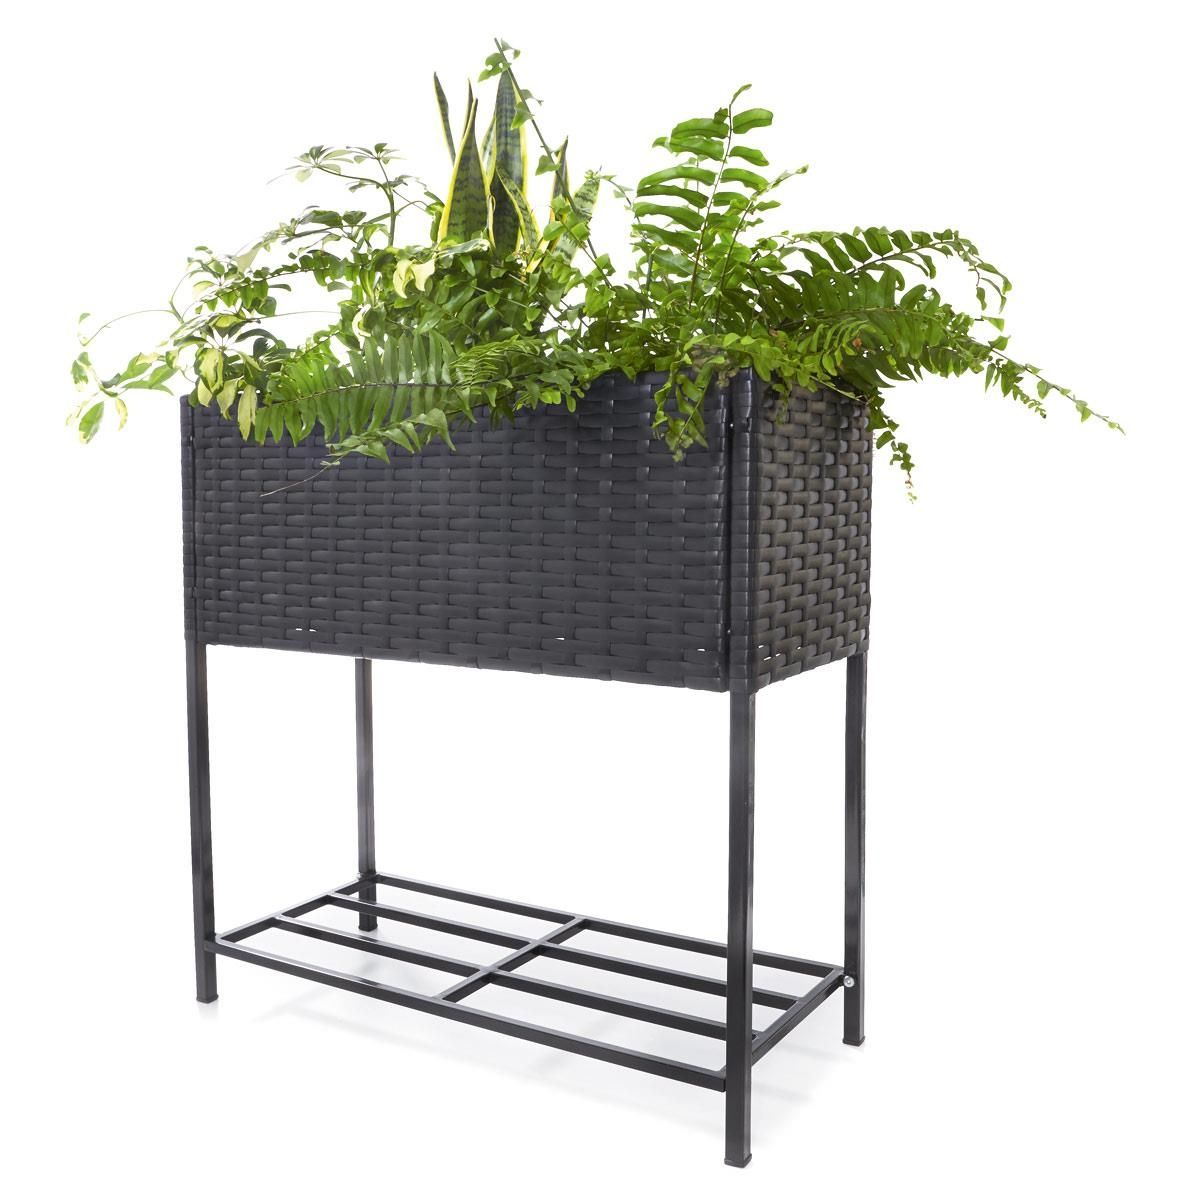 Raised Wicker Planter Black Kmart 39 (With images